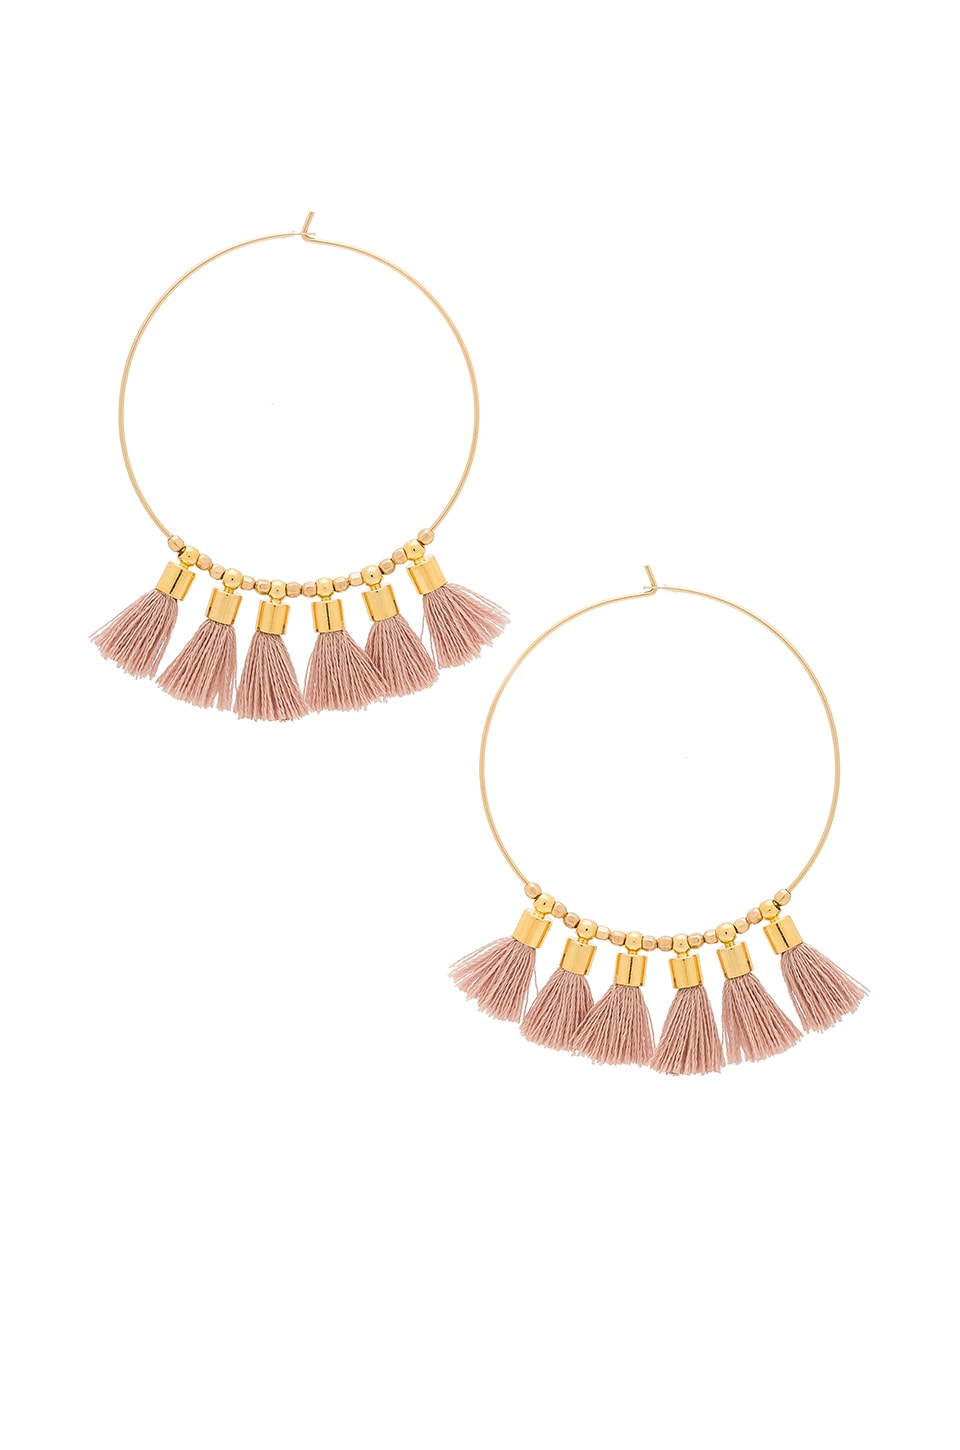 Mimi & Lu Sonia Tassel Earrings in Mauve